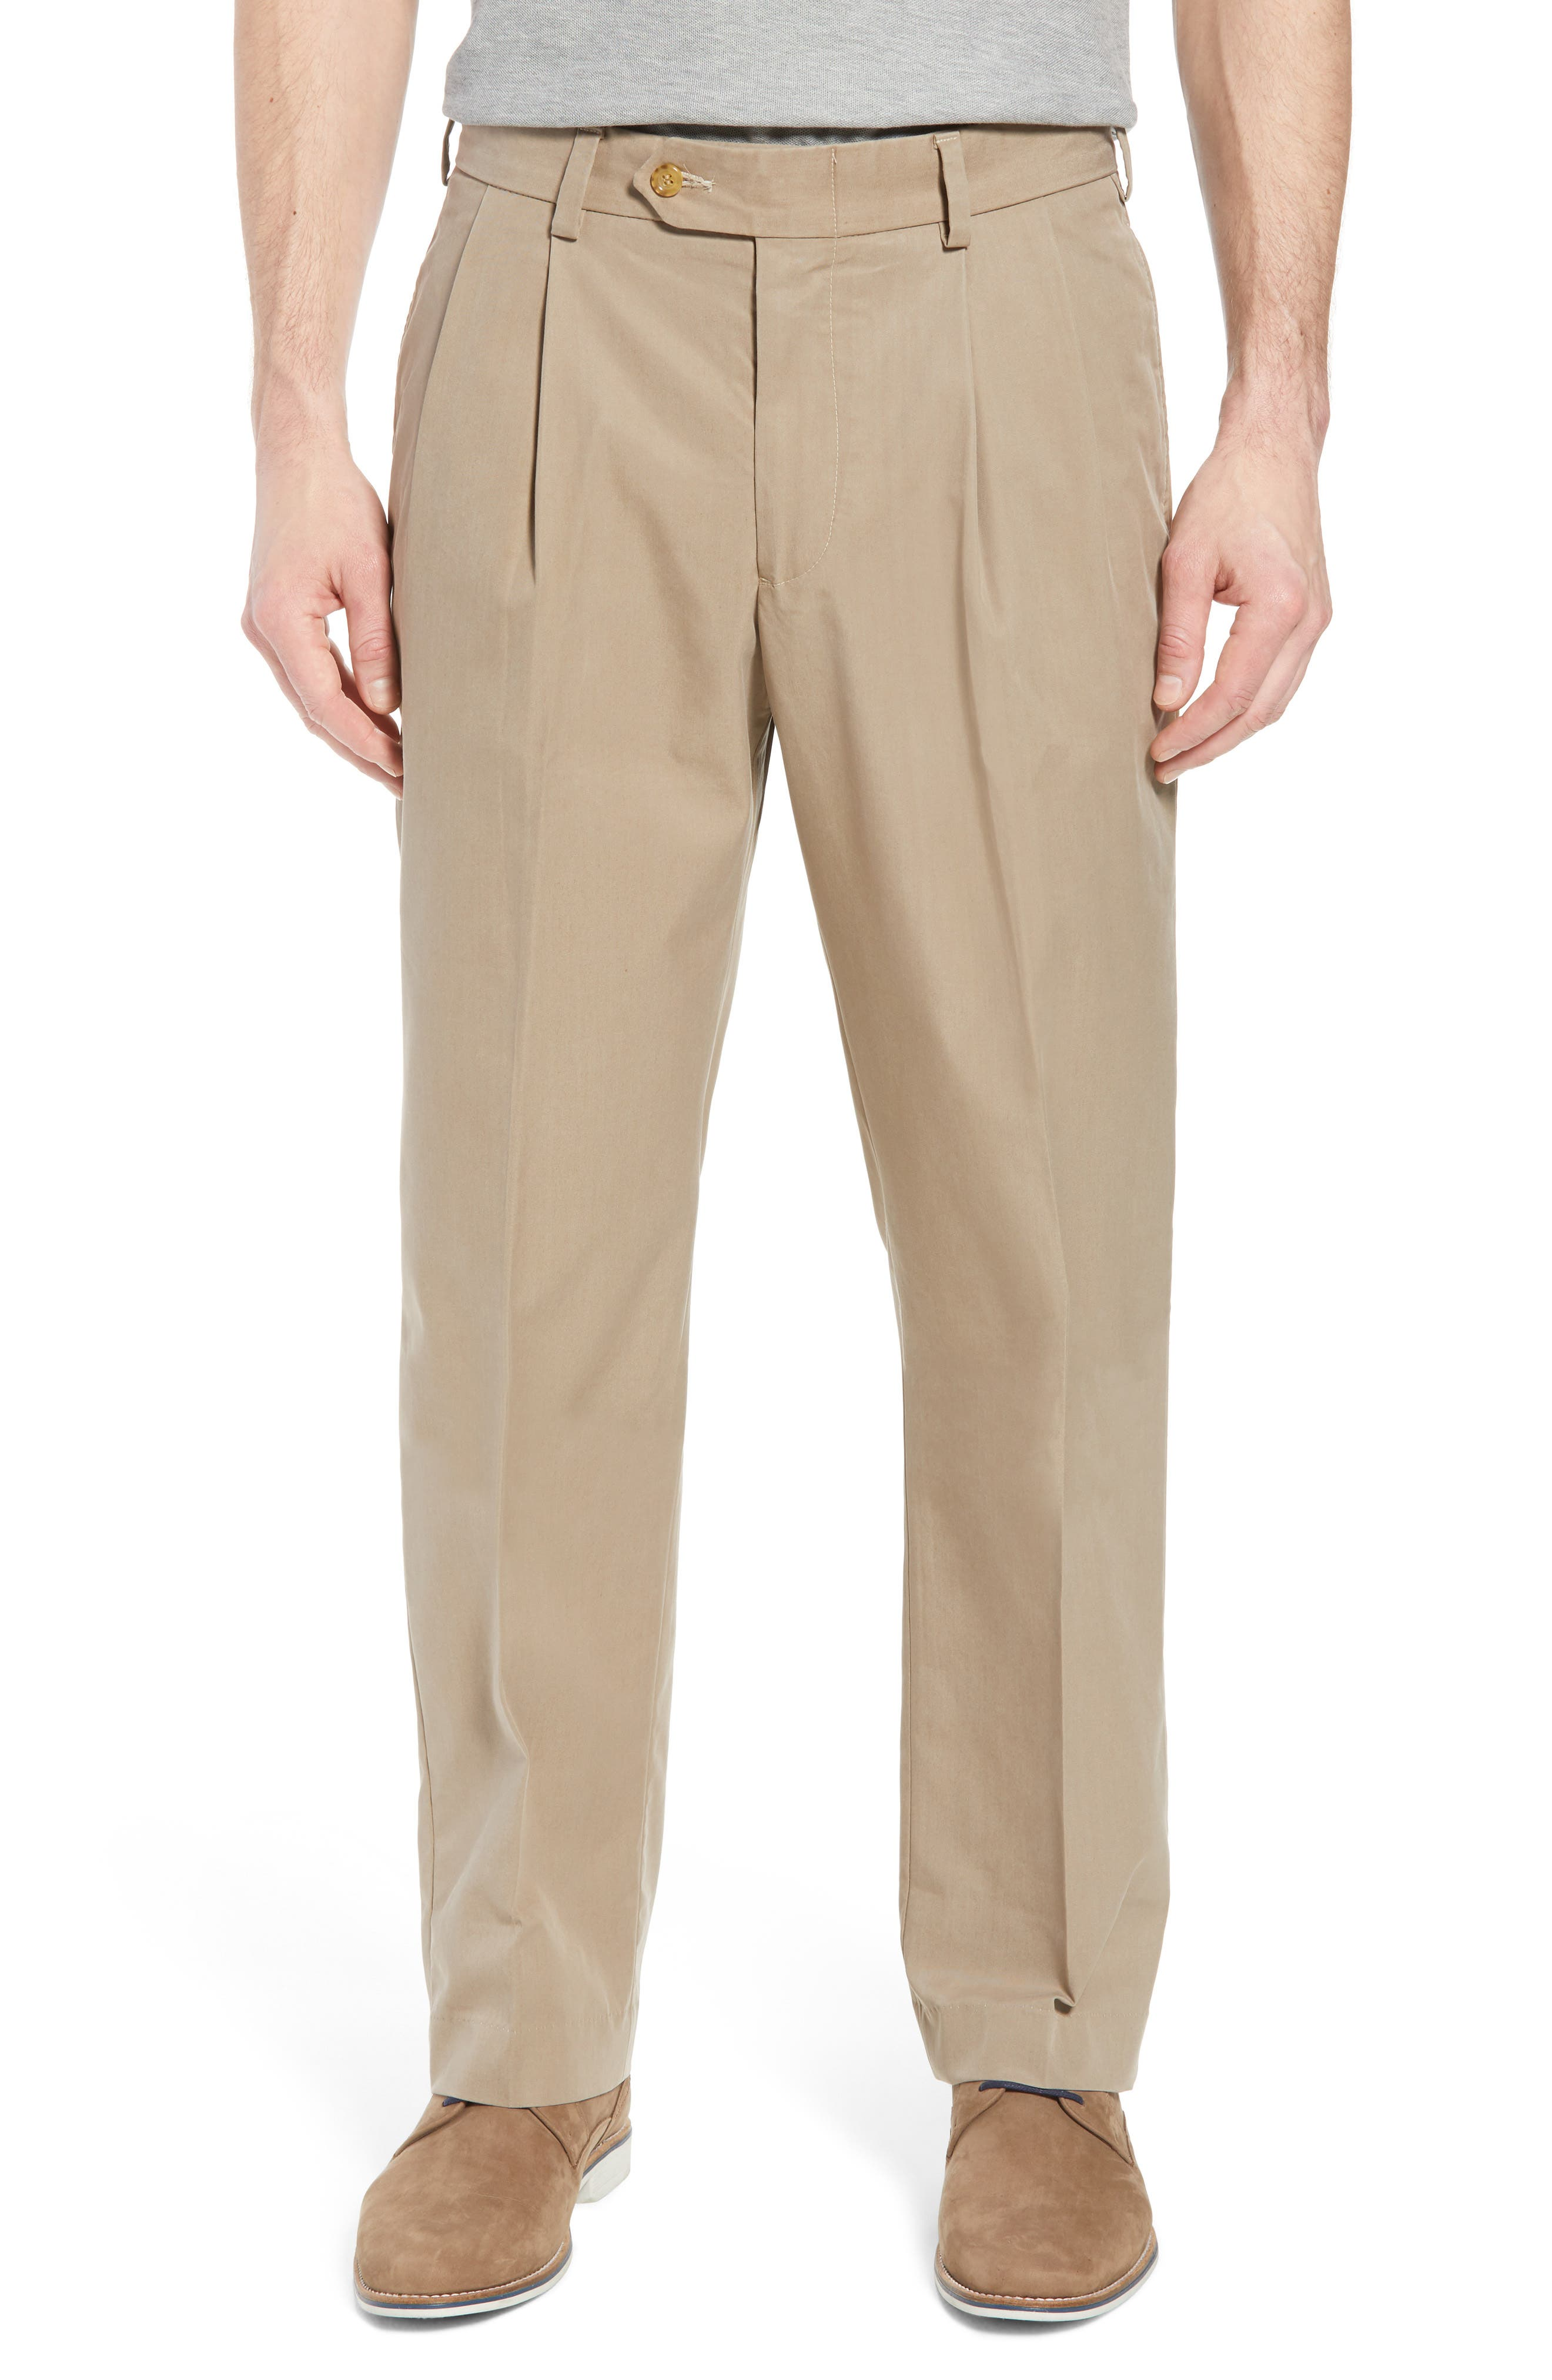 Bills Khakis M2 Classic Fit Pleated Travel Twill Pants